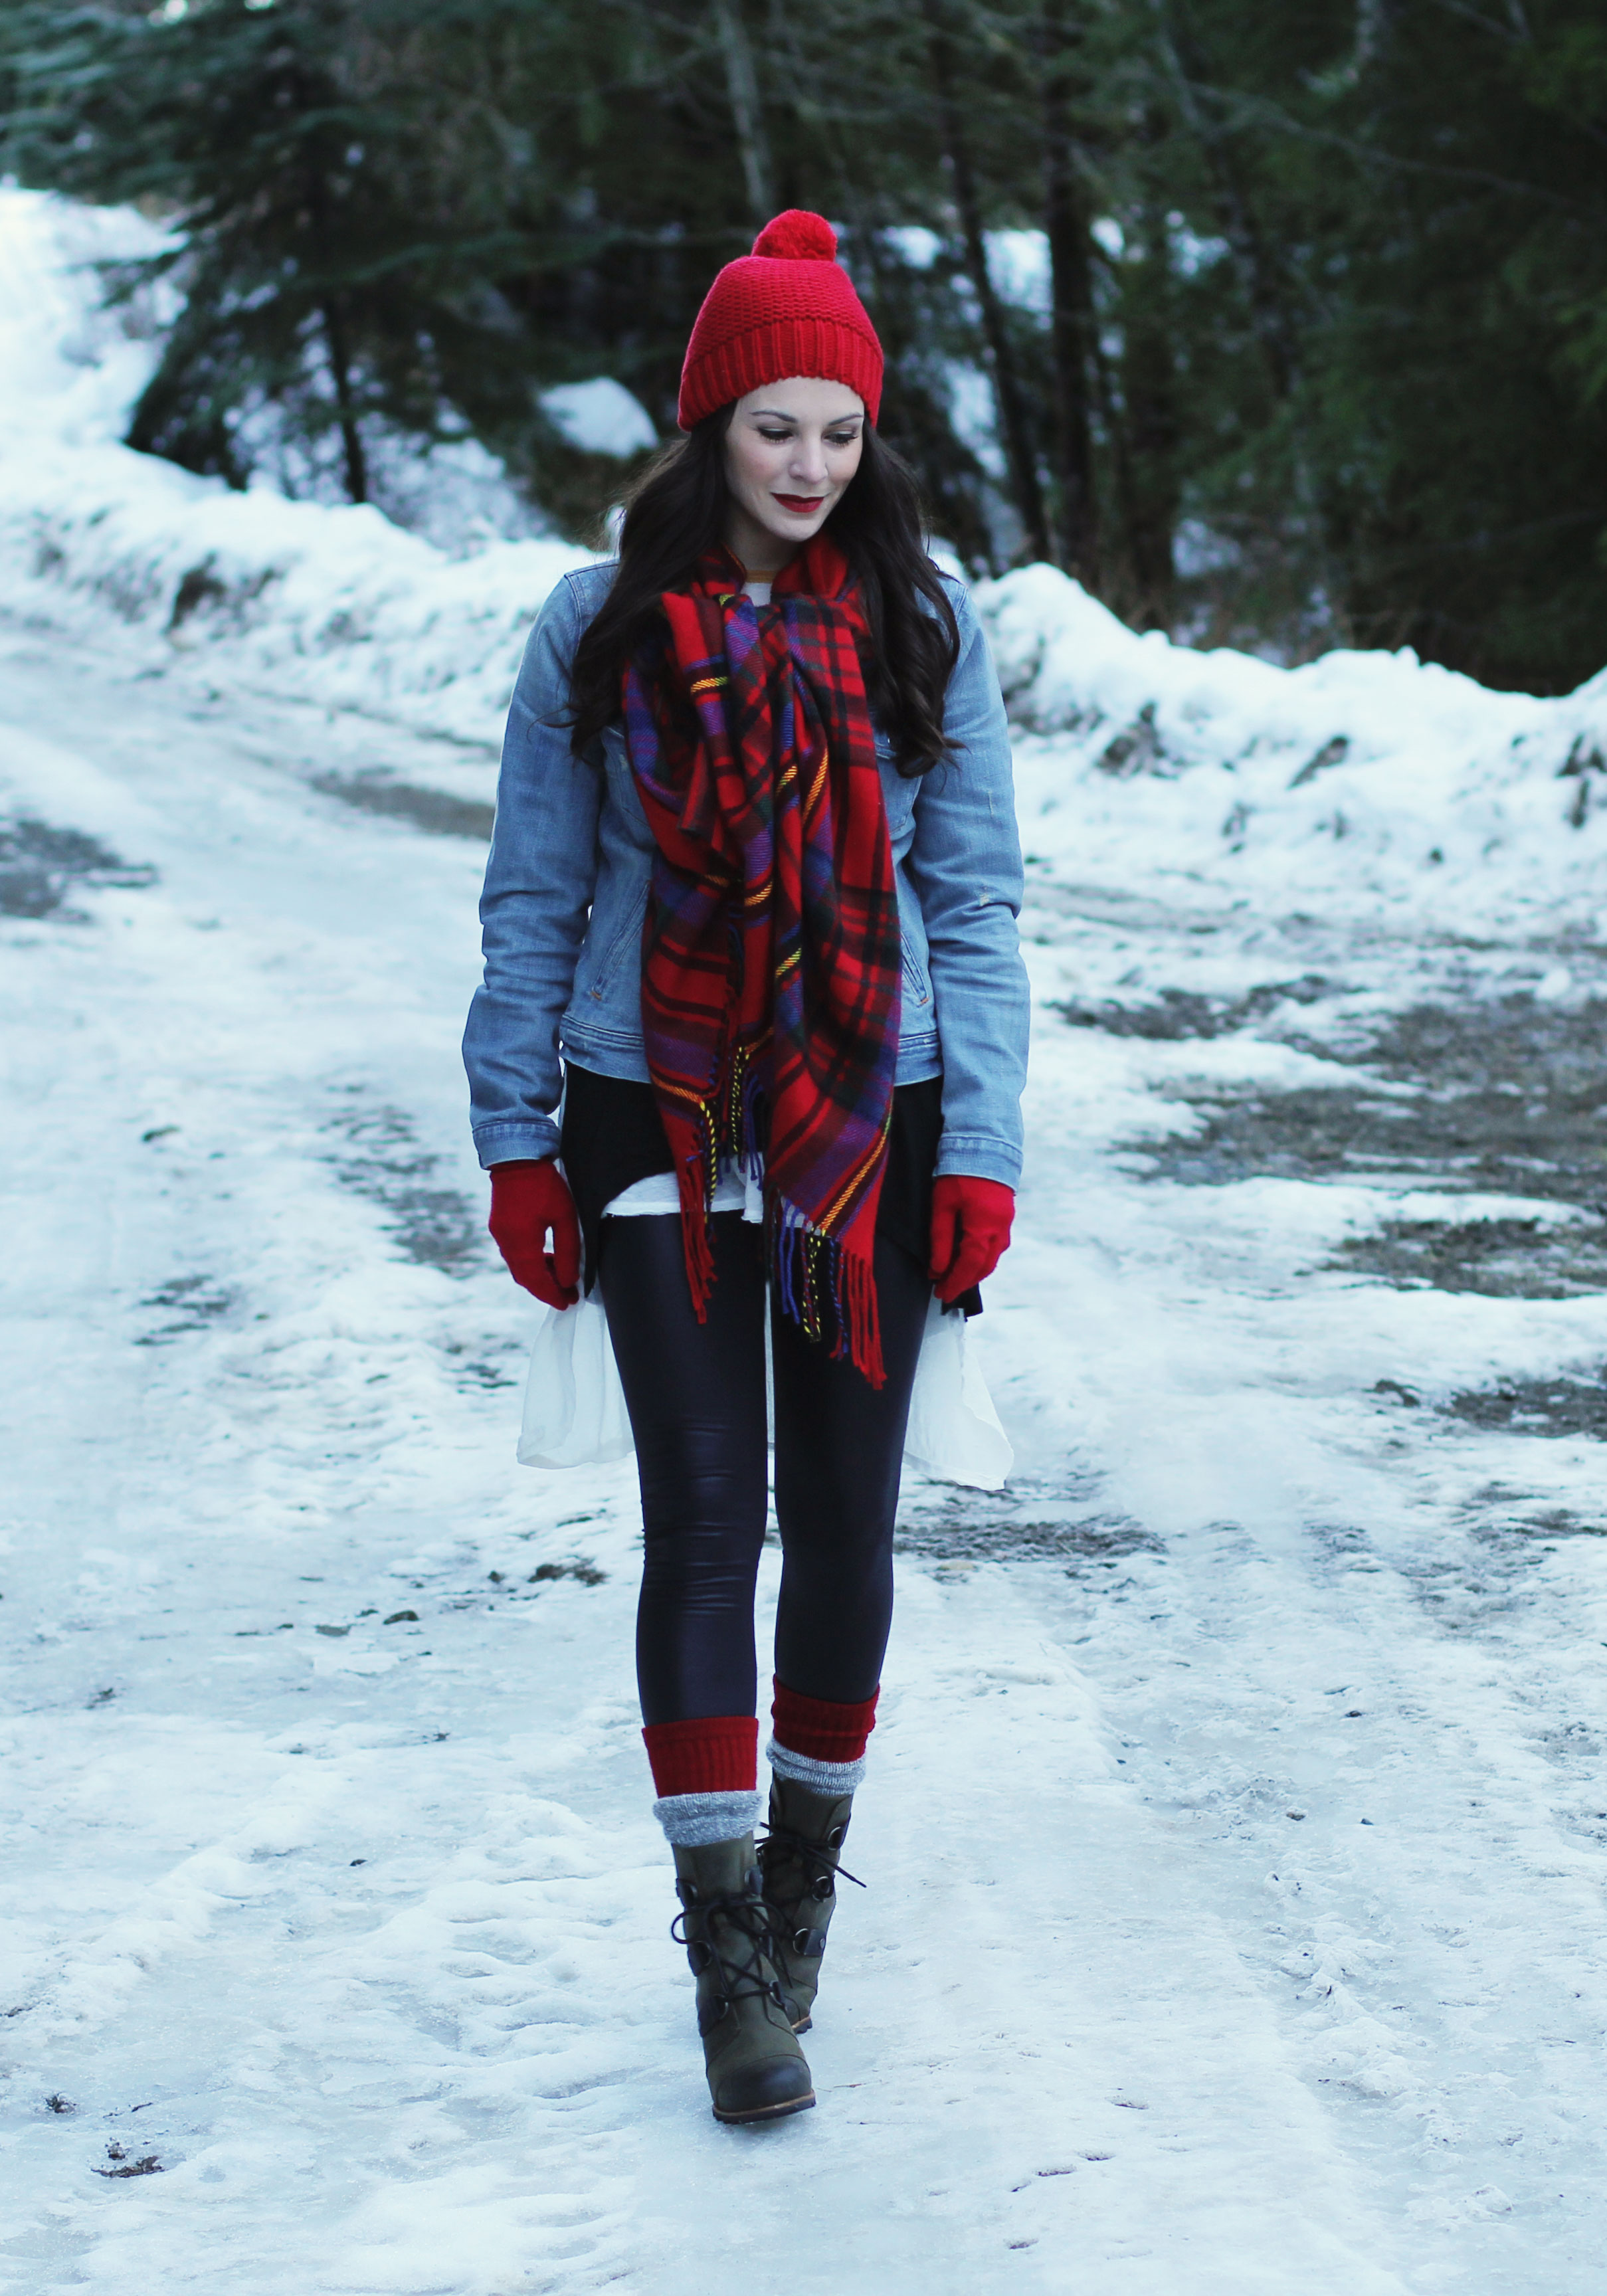 Winter Outfit, Snow Day Outfit, J.Crew Denim Jacket, Plaid Blanket Scarf, Red Gap Beanie with Pom Pom, Sorel Joan Of Arctic Wedge Boots, Long Layering Tees